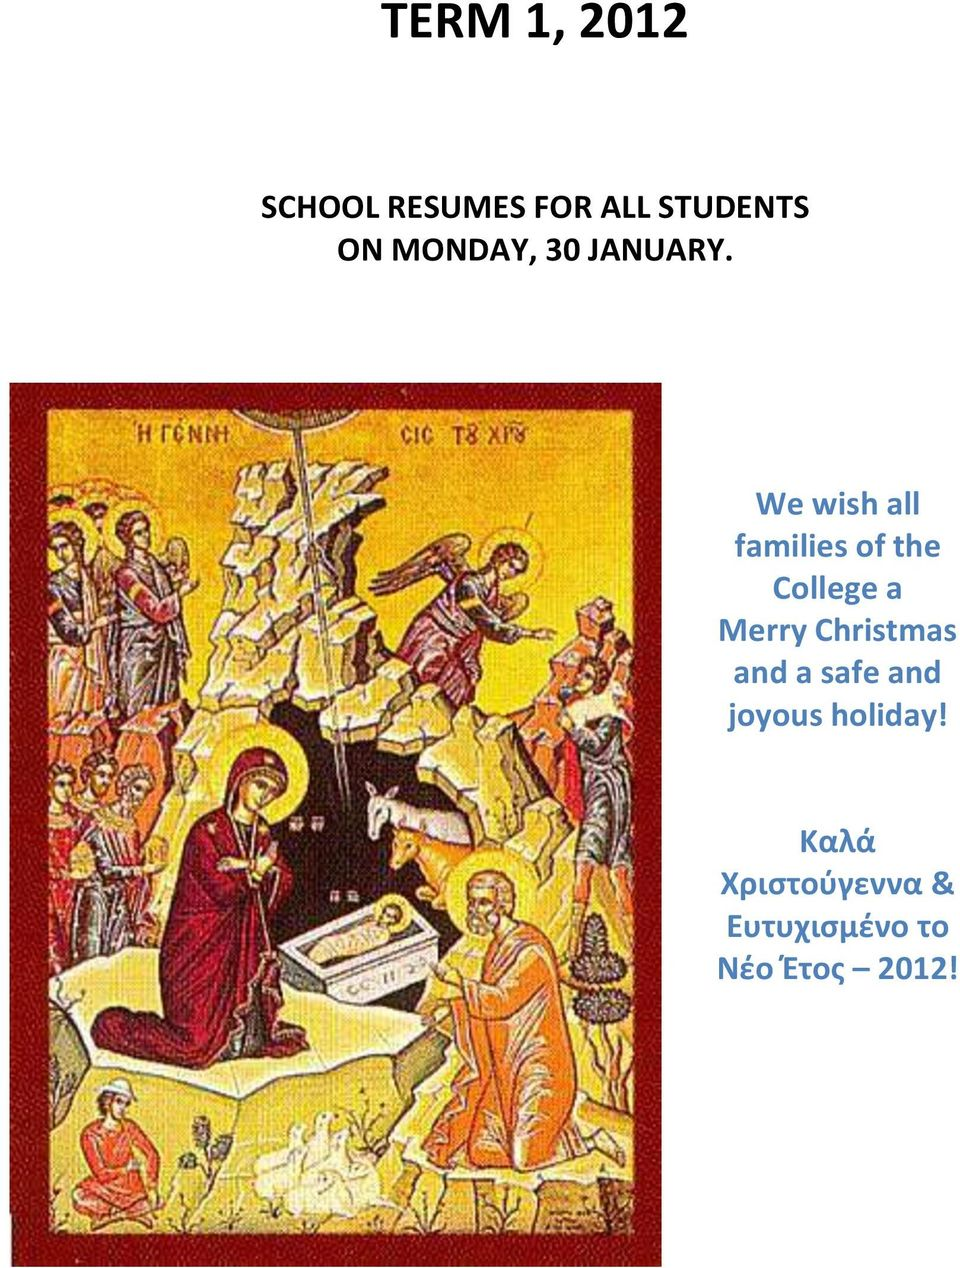 We wish all families of the College a Merry